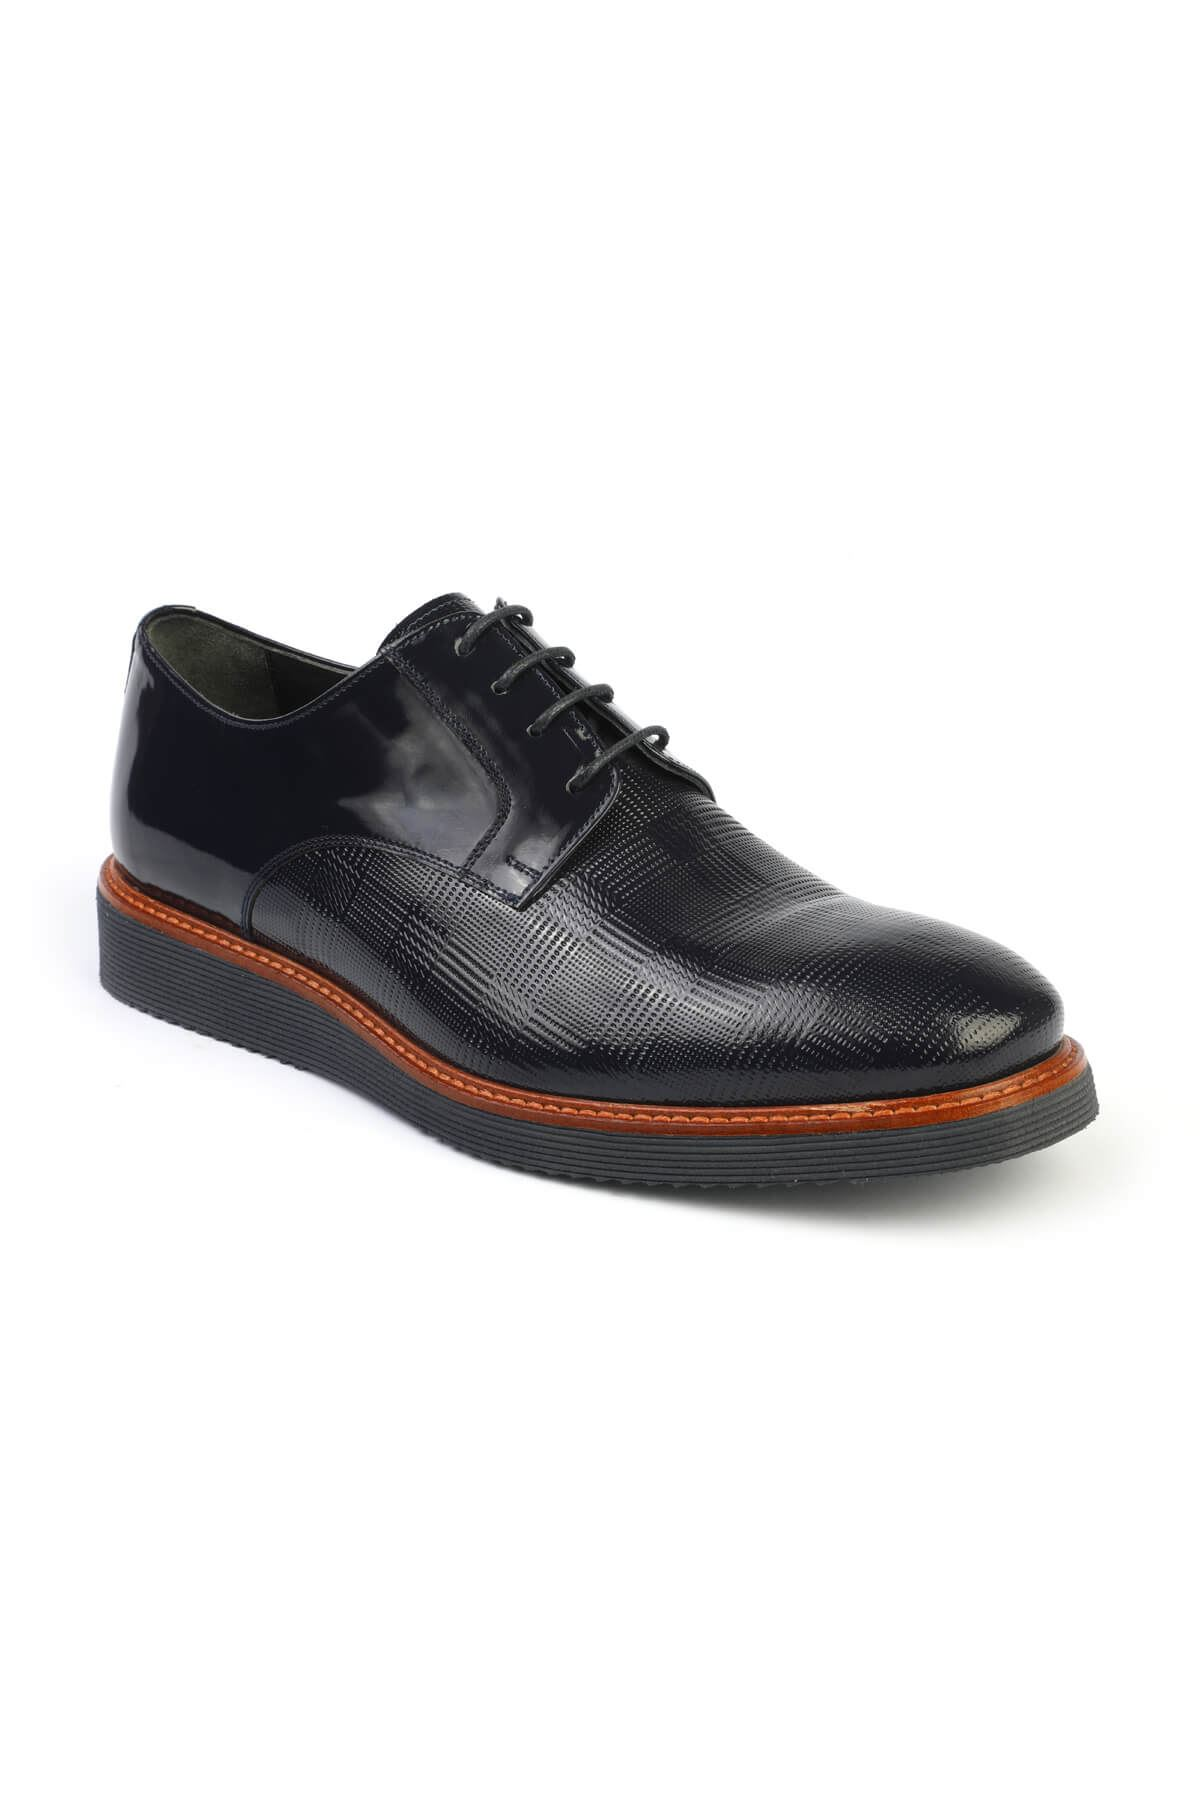 Libero C494 Navy Blue Casual Shoes